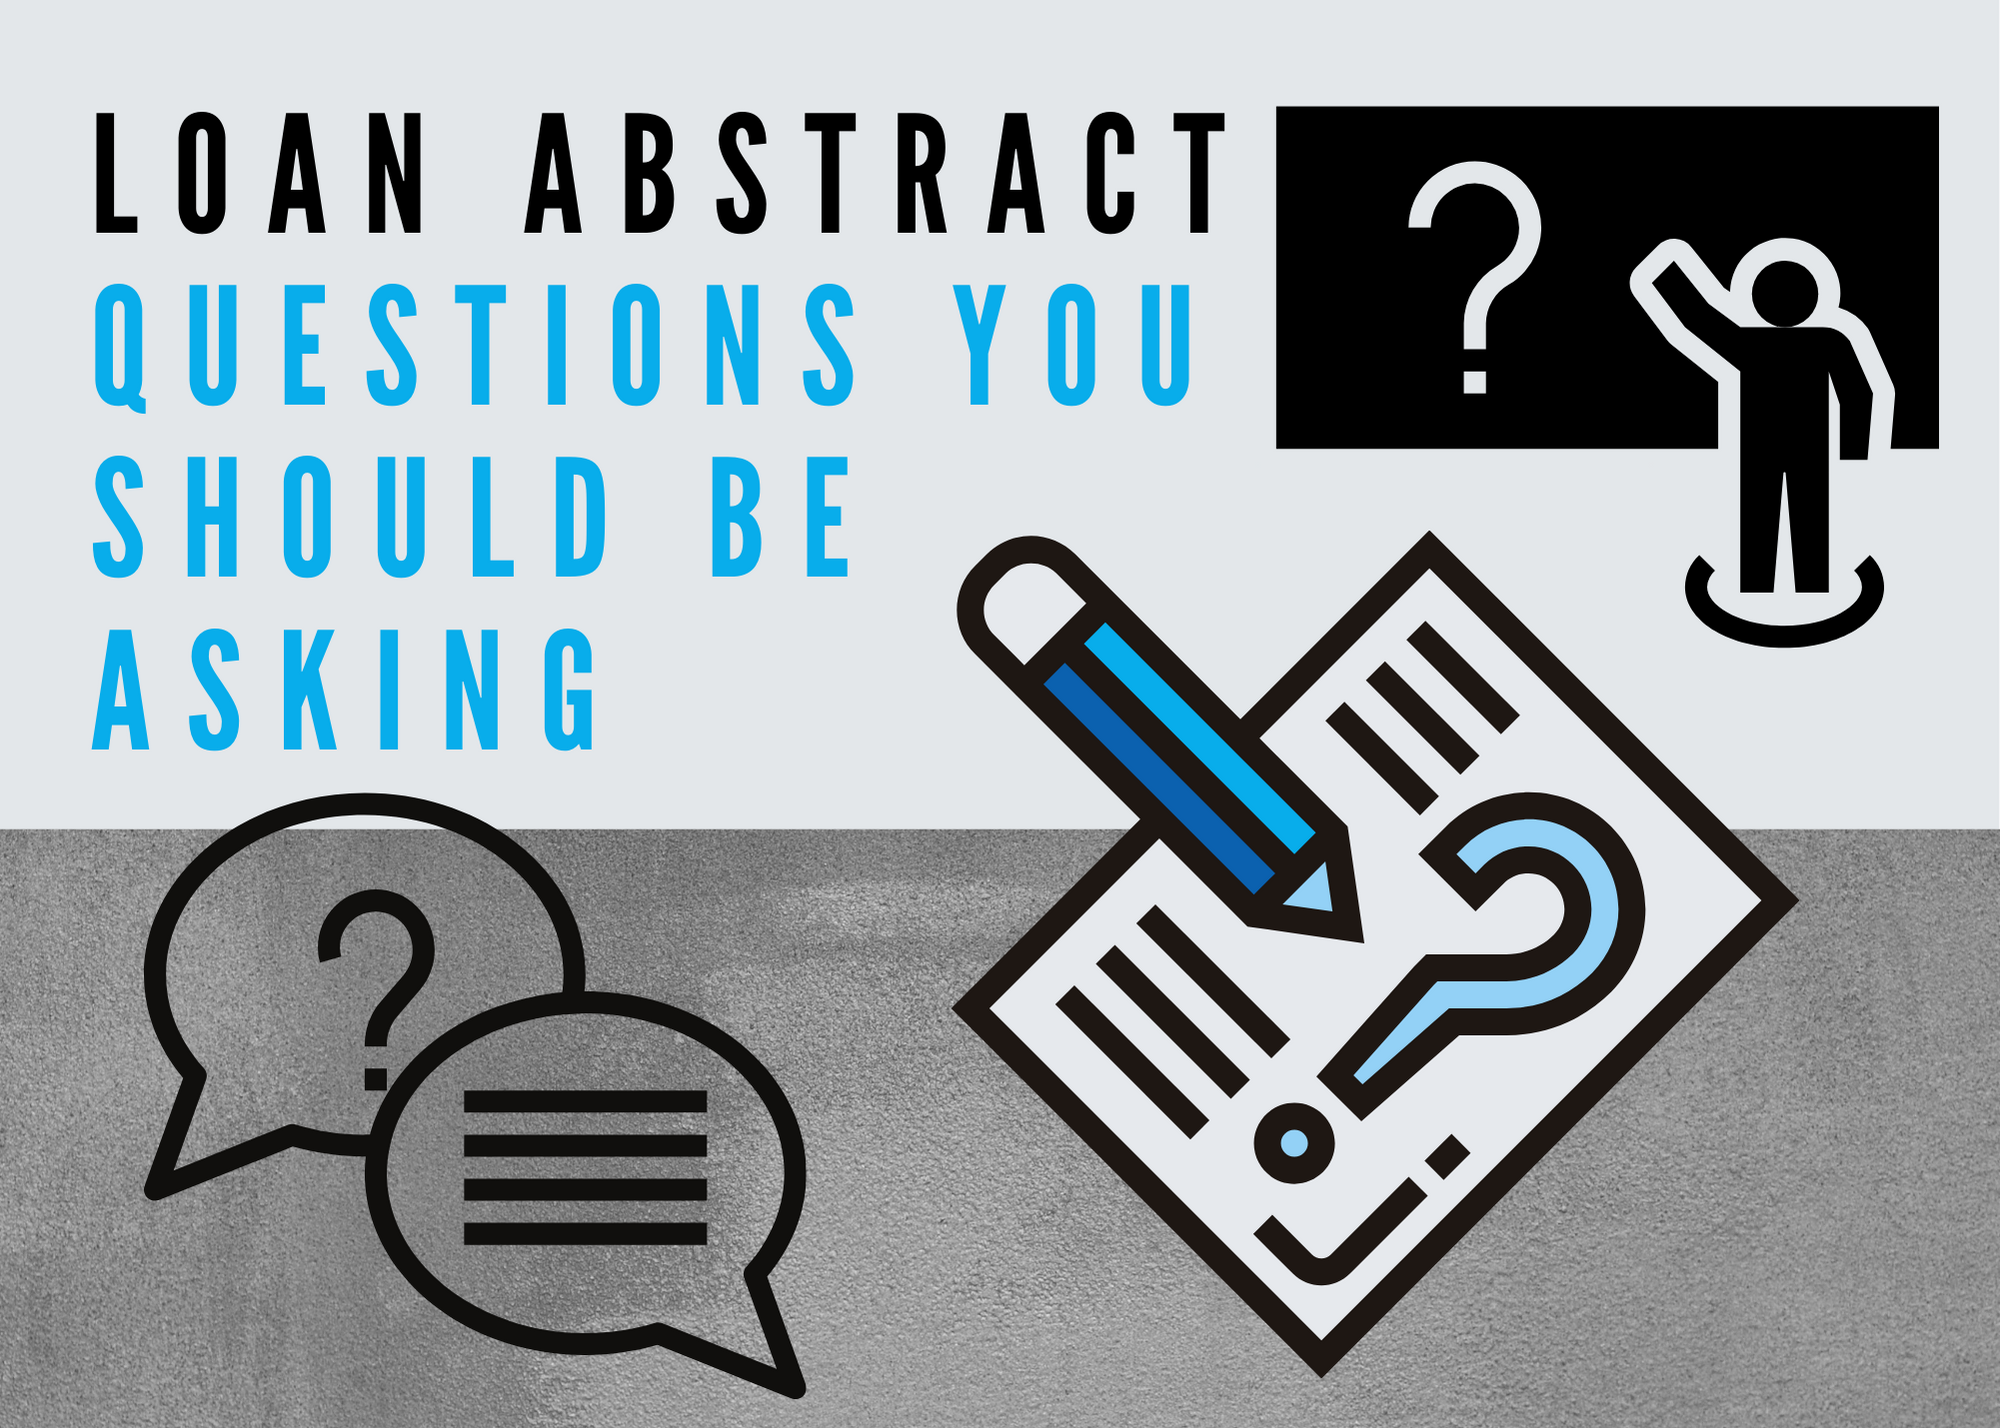 Abstract Questions You Should Be Asking